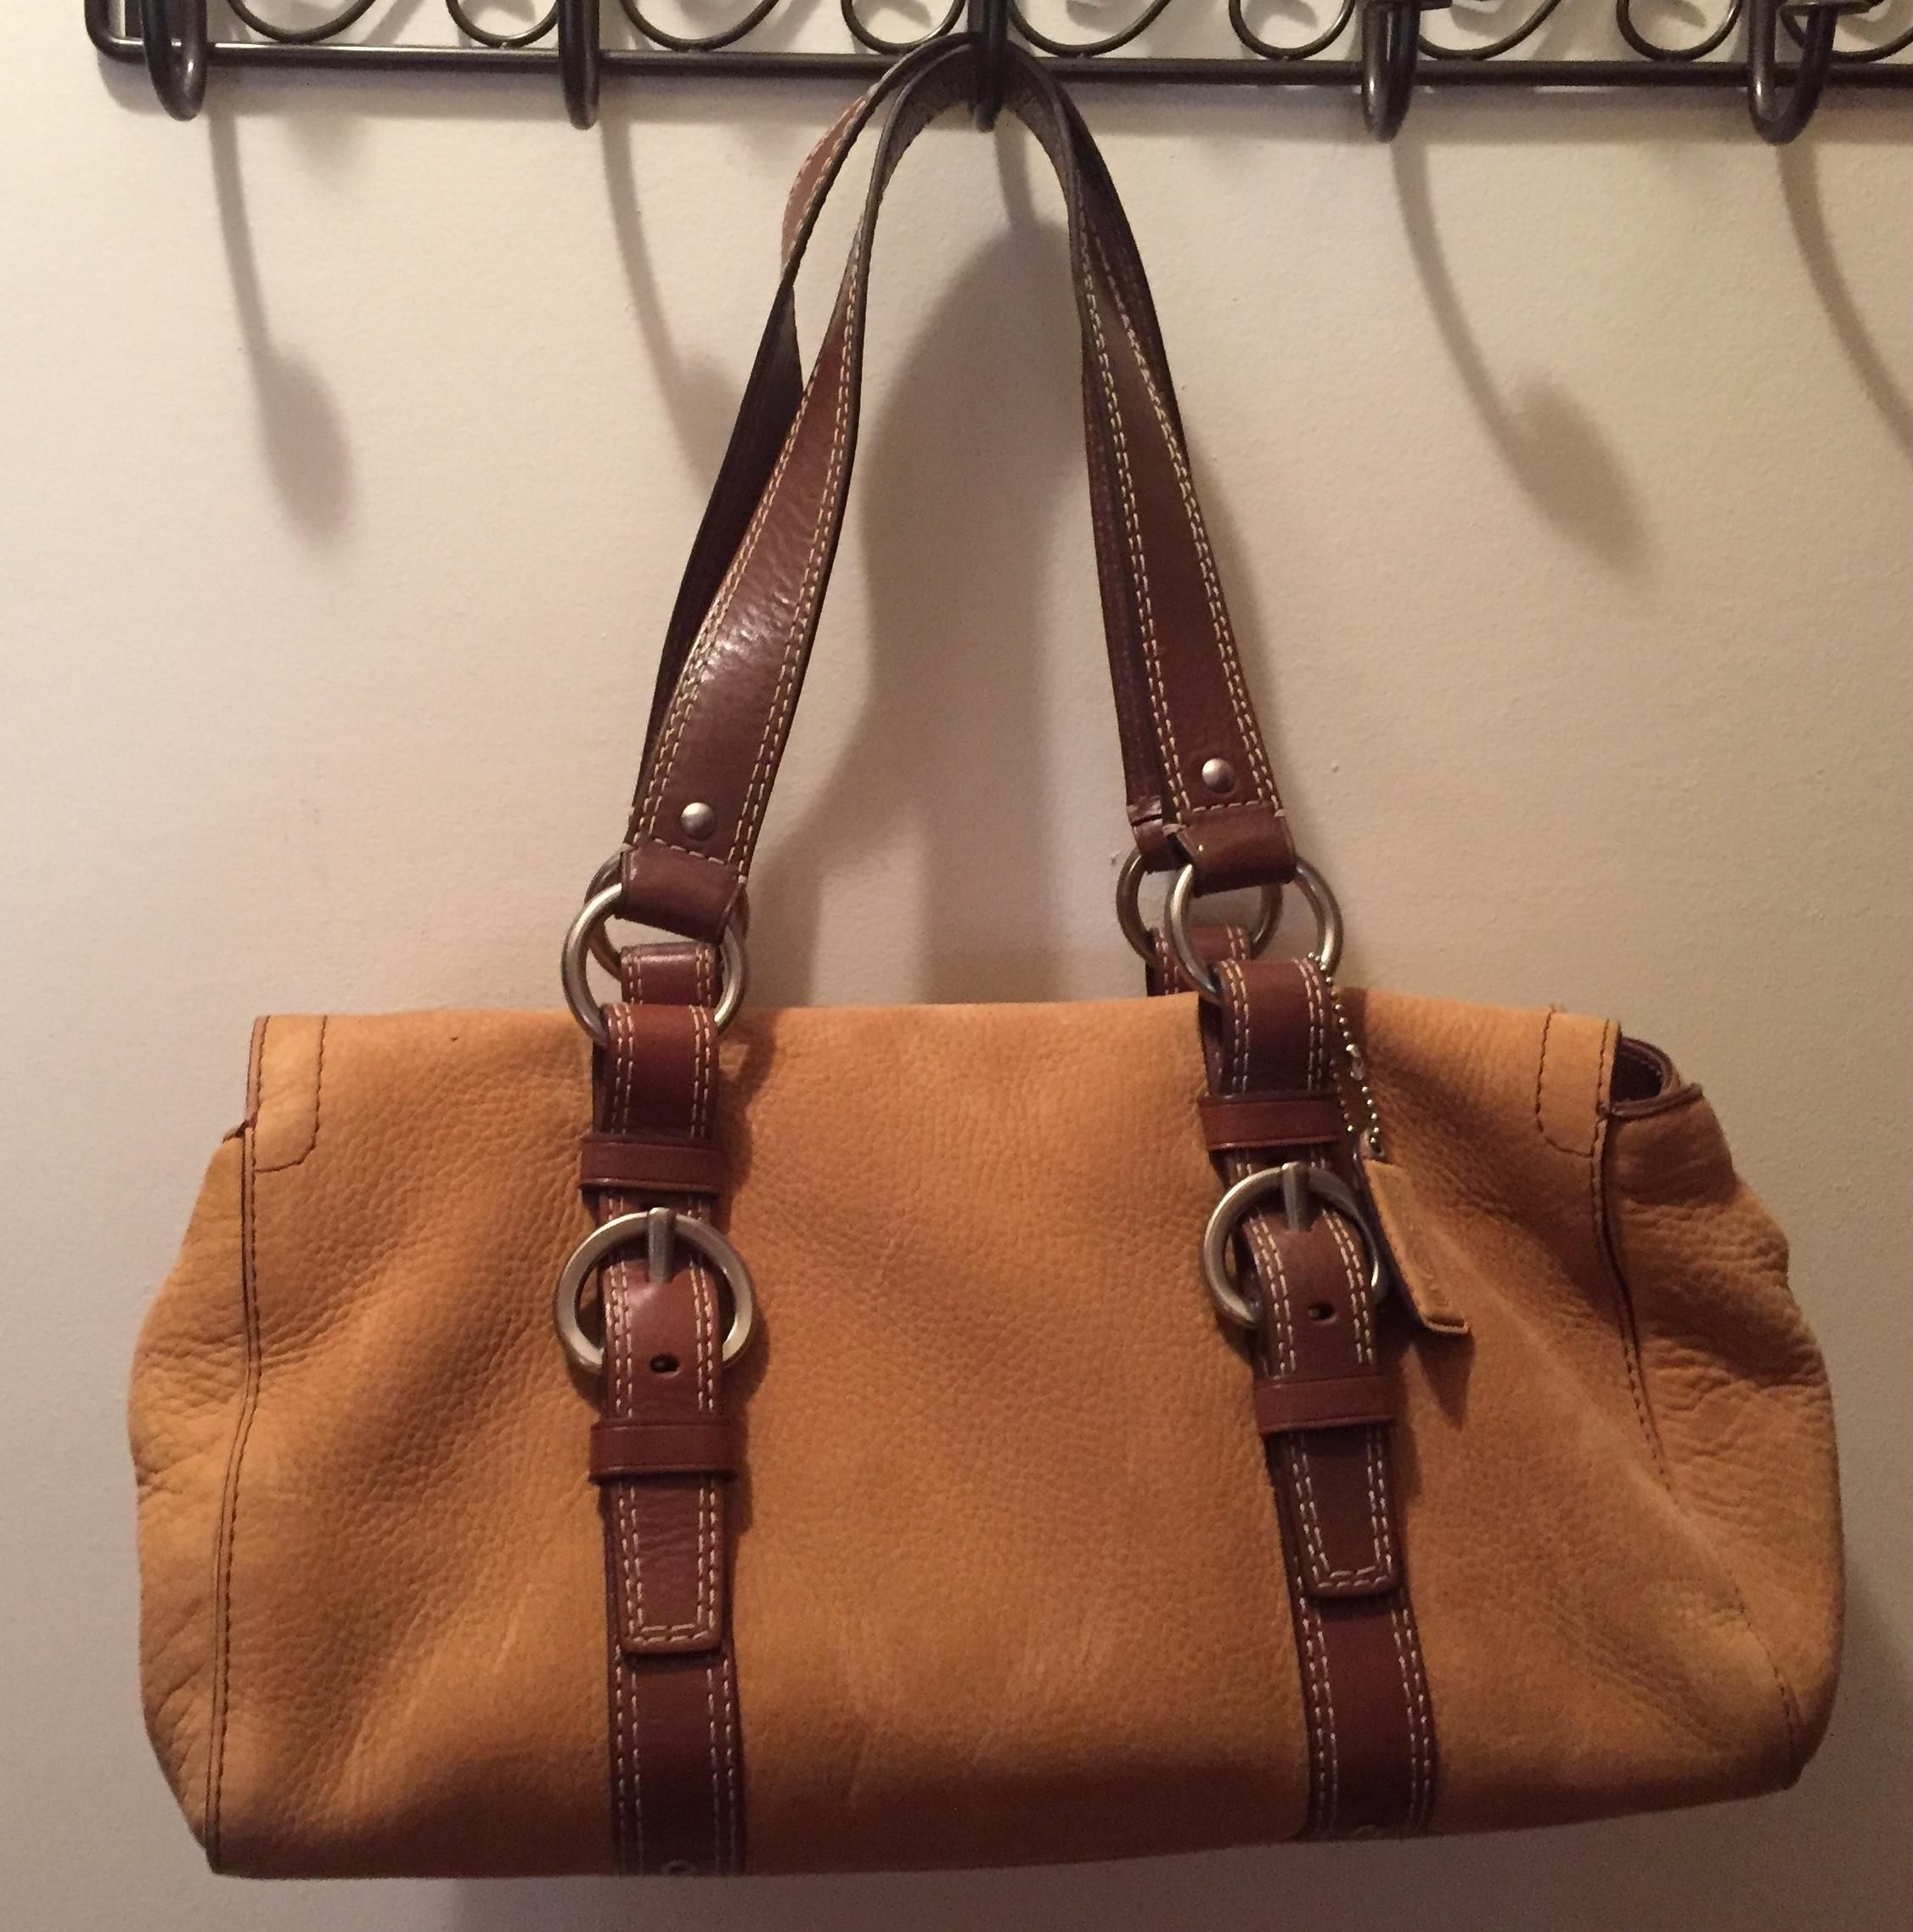 Coach F10895 Camel Satchel. Save 72% on the Coach F10895 Camel Satchel!  This satchel is a top 10 member favorite on Tradesy. See how much you can  save 8be3ae236117c